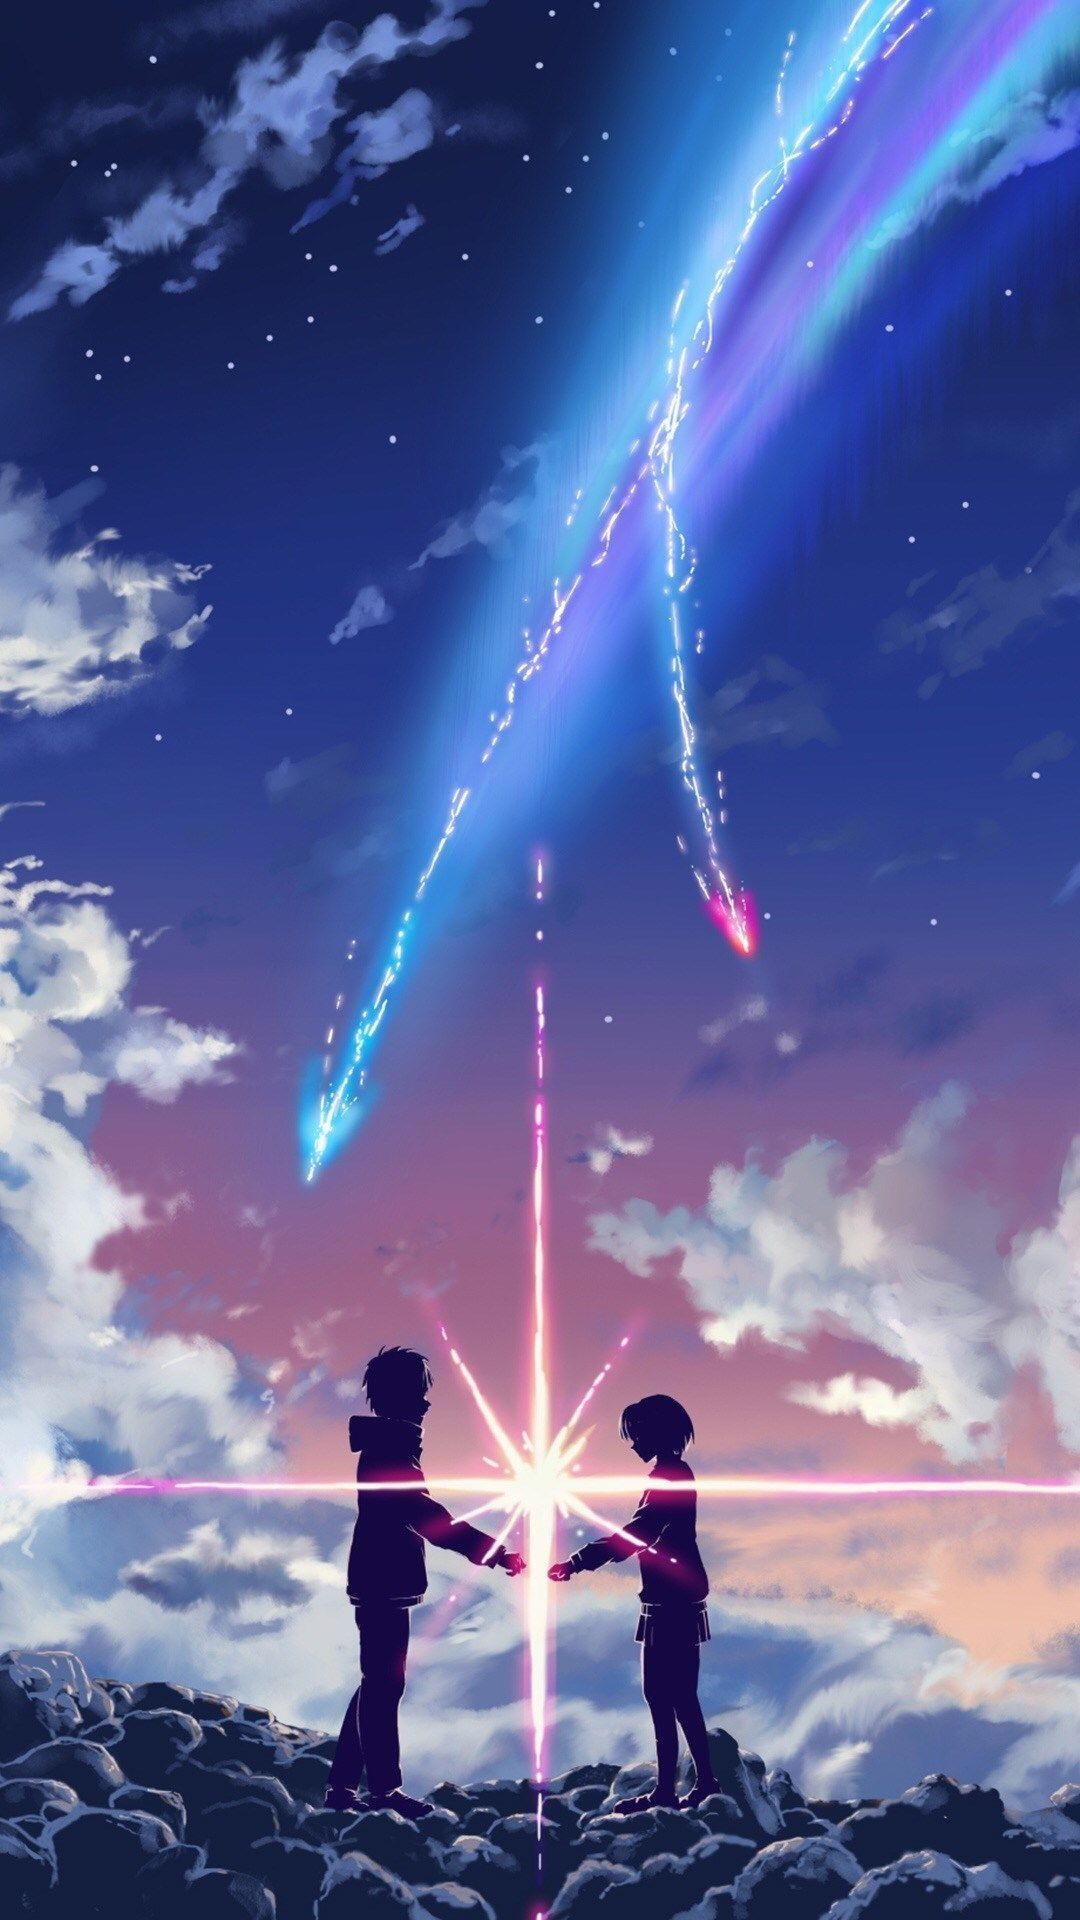 Anime Aesthetic Iphone Wallpaper Fresh Your Name Movie Touching Through Space Poster Iphone